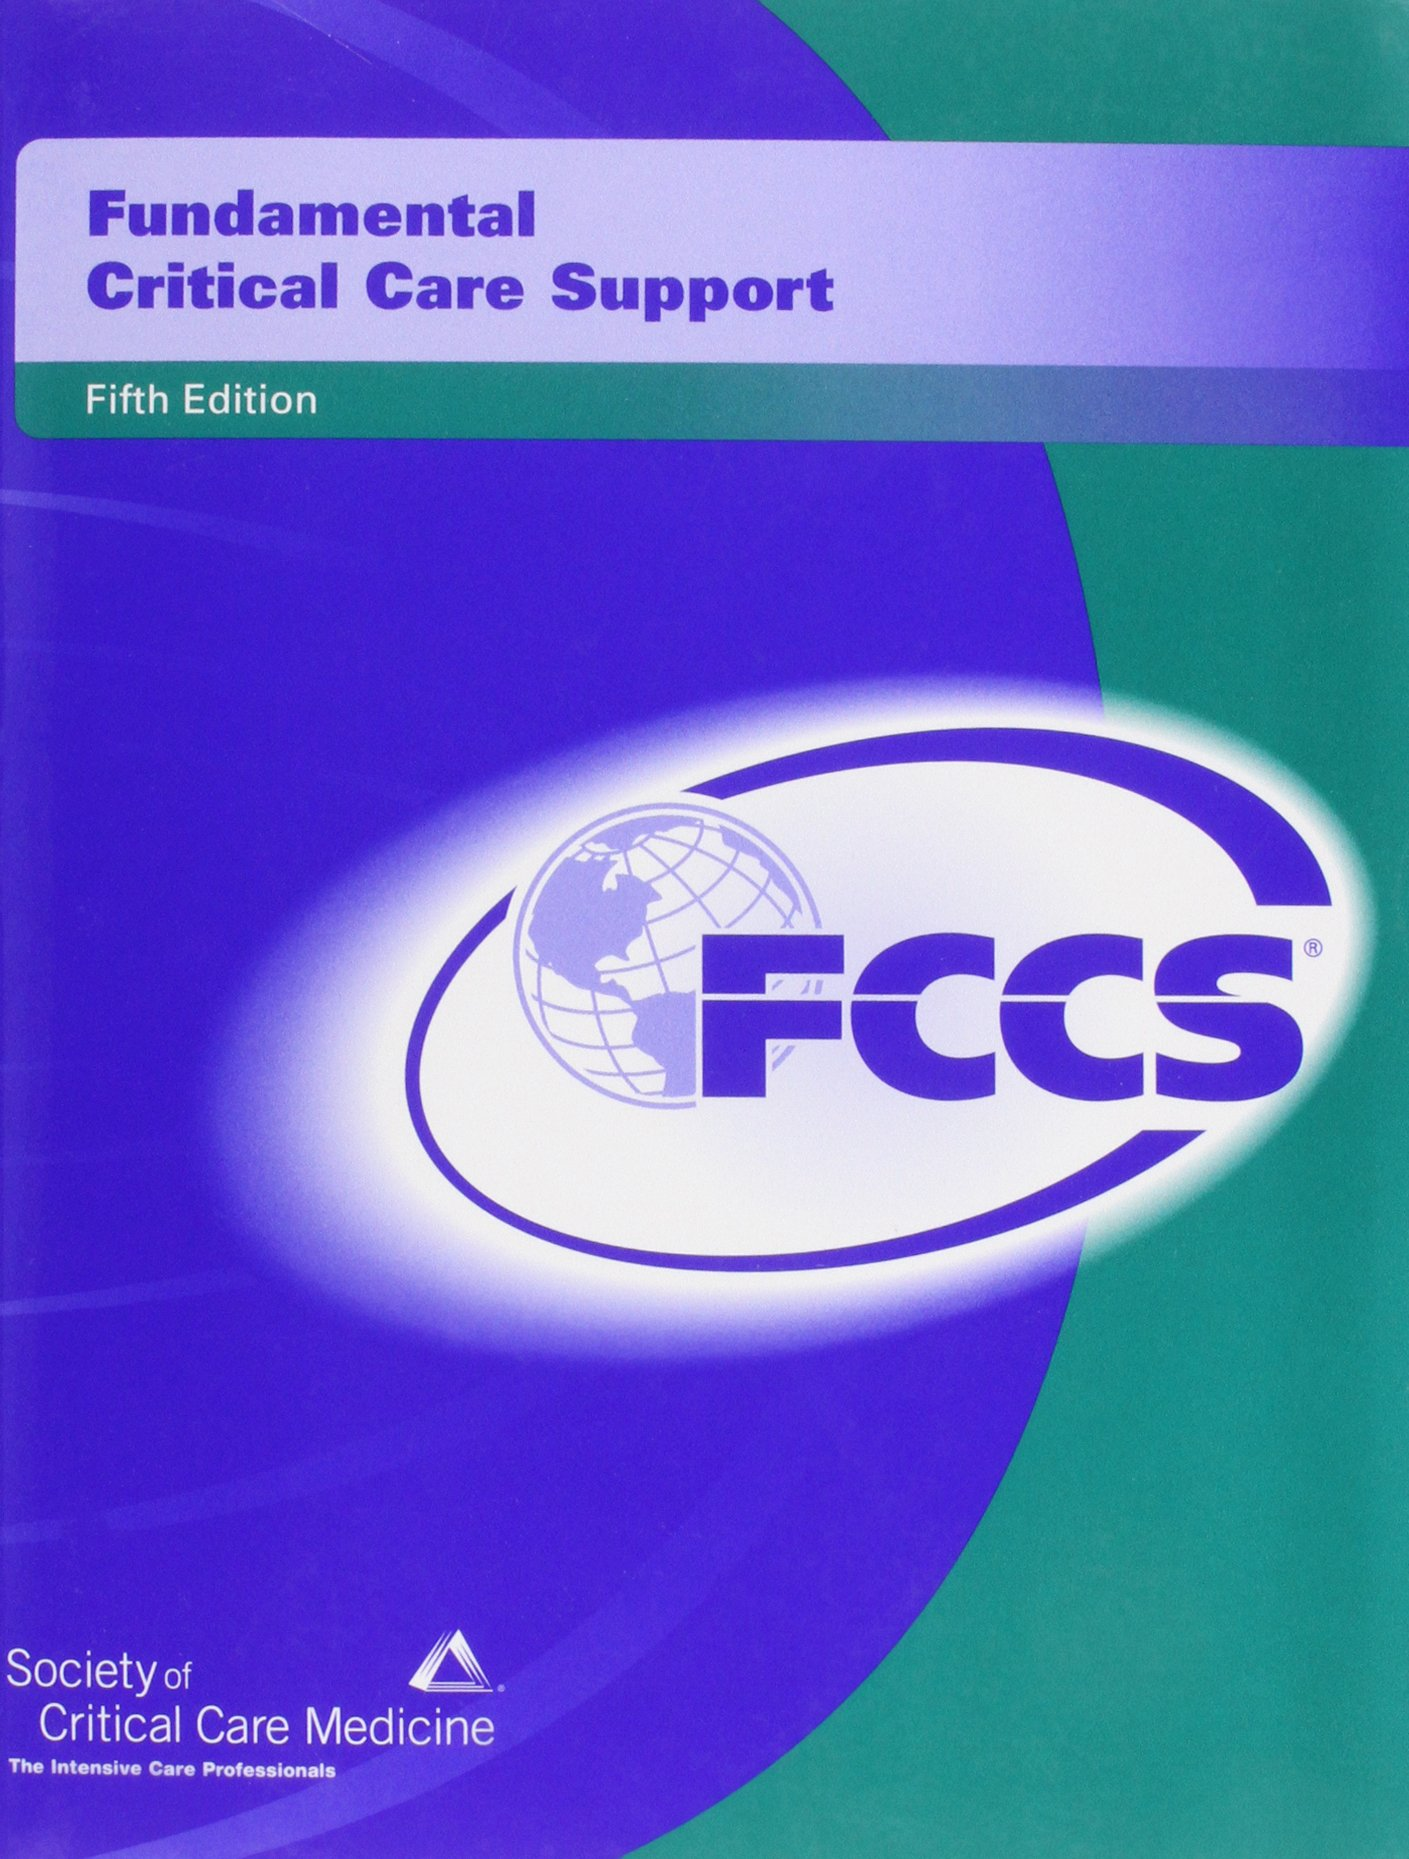 Amazon Buy Fundamental Critical Care Support Book Online At Low